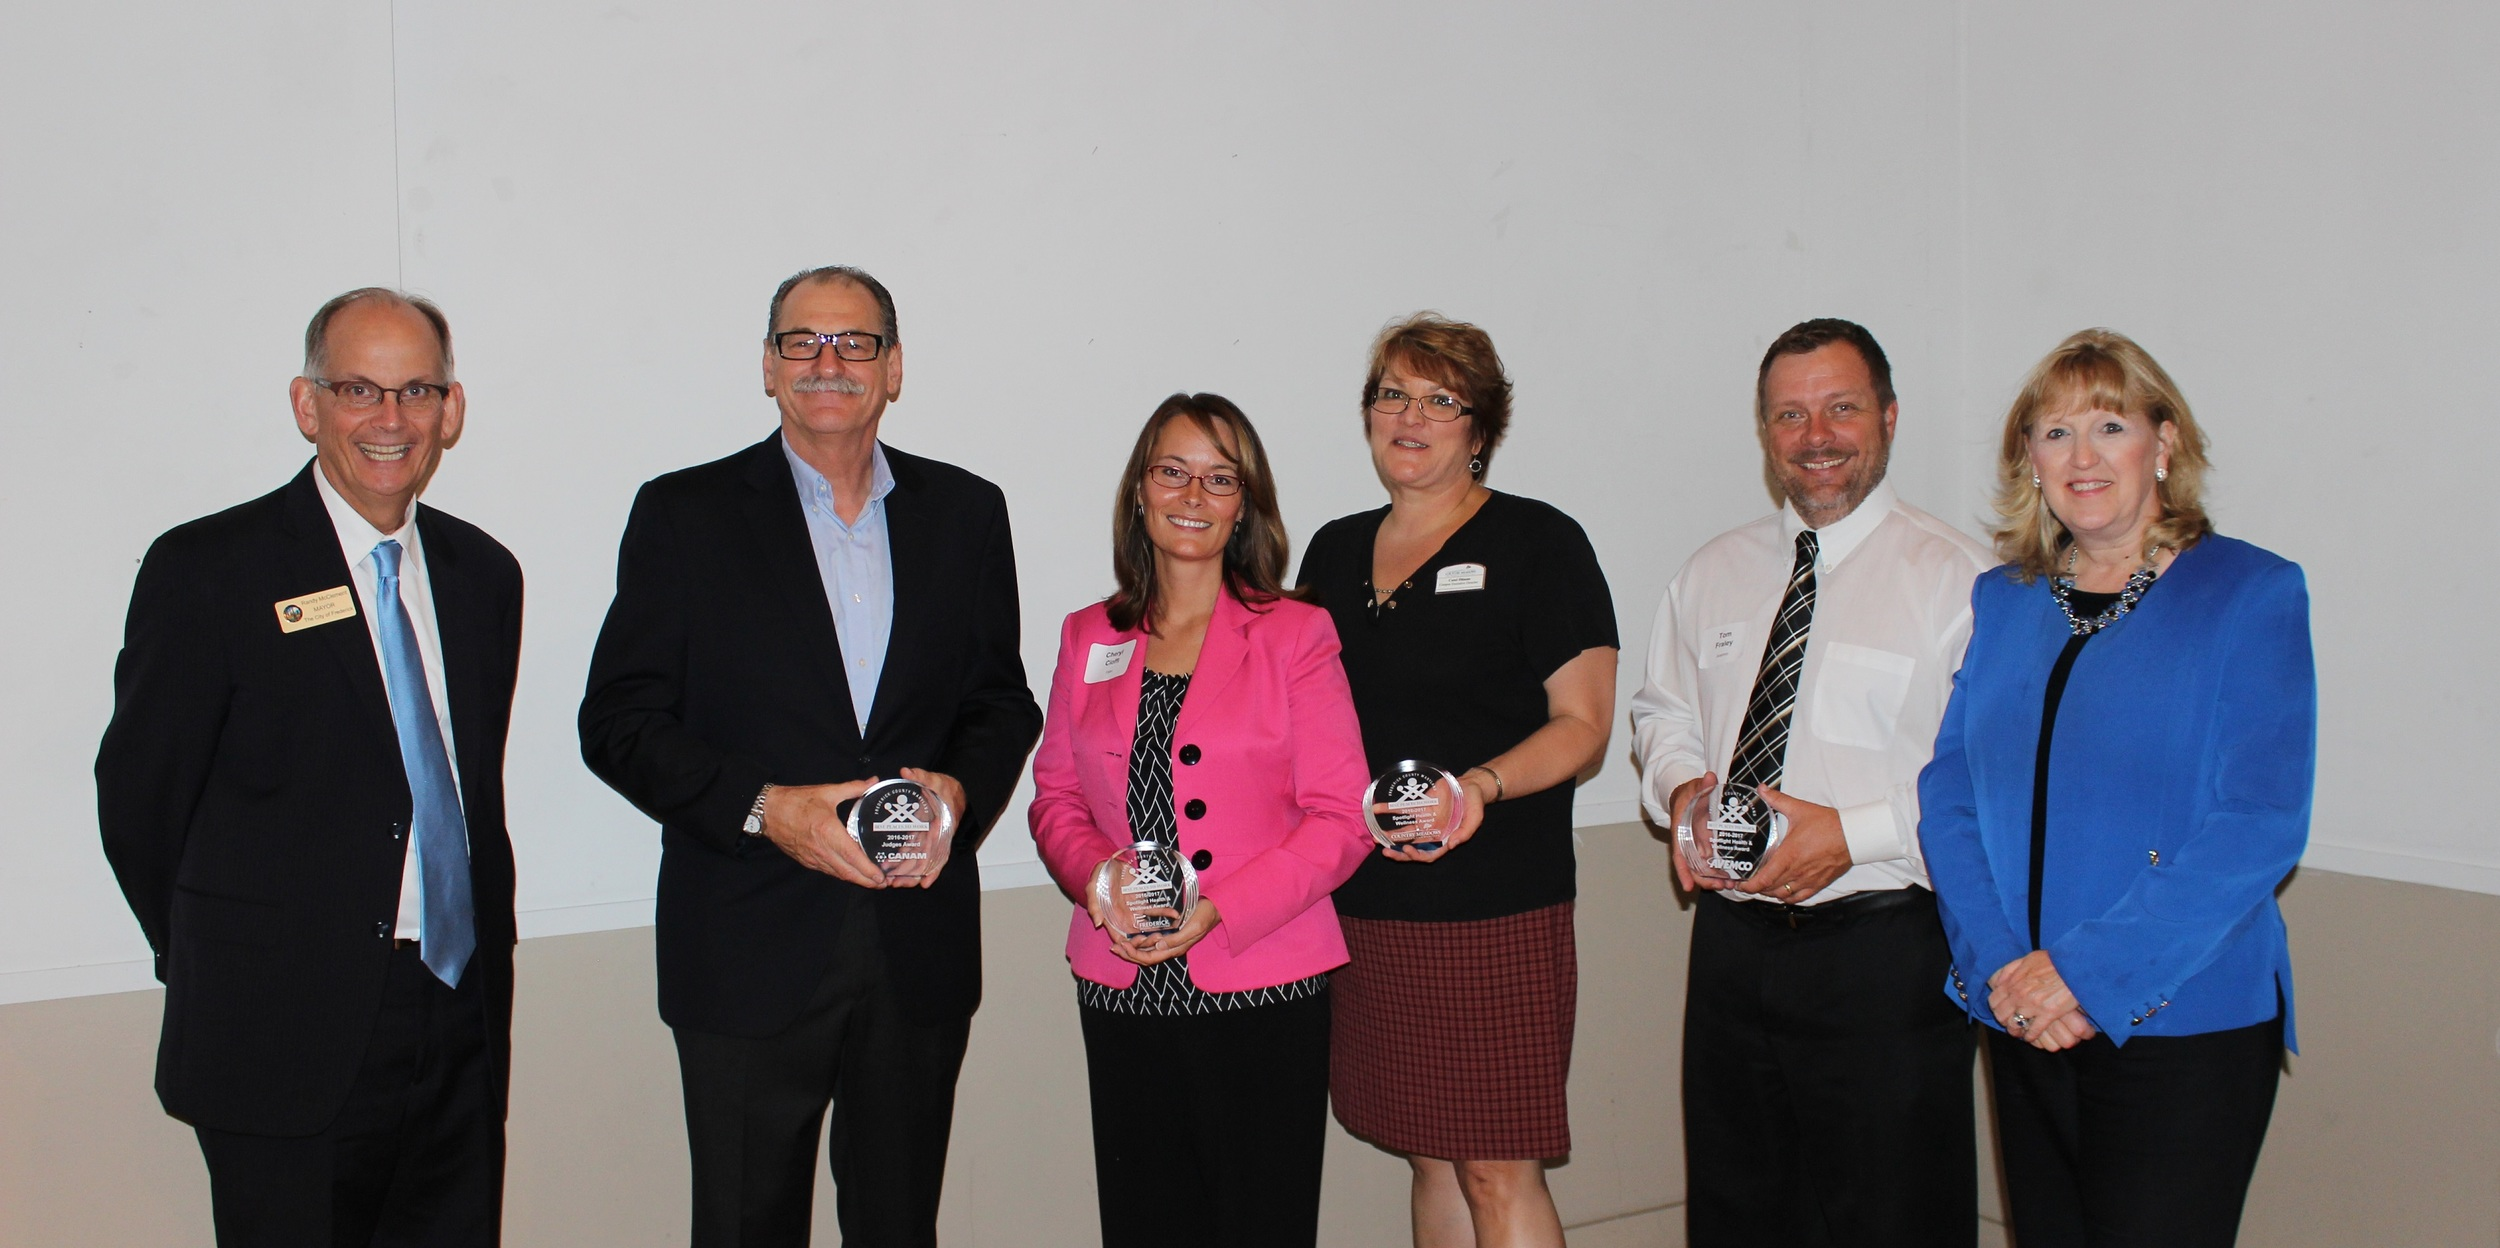 2016 Health and Wellness and Judges Choice Photo  (from left to right): City of Frederick Mayor Randy McClement; Judges Choice Winner Michel Cyr, Canam Steel Corp; Spotlight Health & Wellness Winner Cheryl Cioffi, Sr. Vice President Patient Care Services, Frederick Memorial Hospital; Spotlight Health & Wellness Winner Carol Ditman, Executive Director, Country Meadows Retirement Communities; Spotlight Health & Wellness Winner Tom Fraley, Vice President of Support Operations, Avemco Insurance; Frederick County Executive Jan H. Gardner